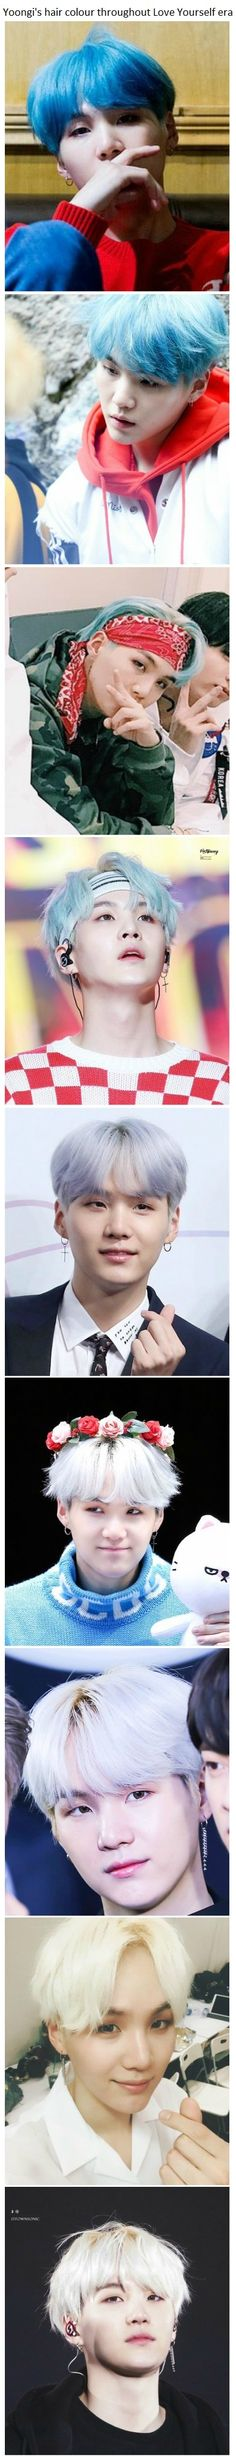 BTS Yoongi's hair colour throughout Love Yourself are